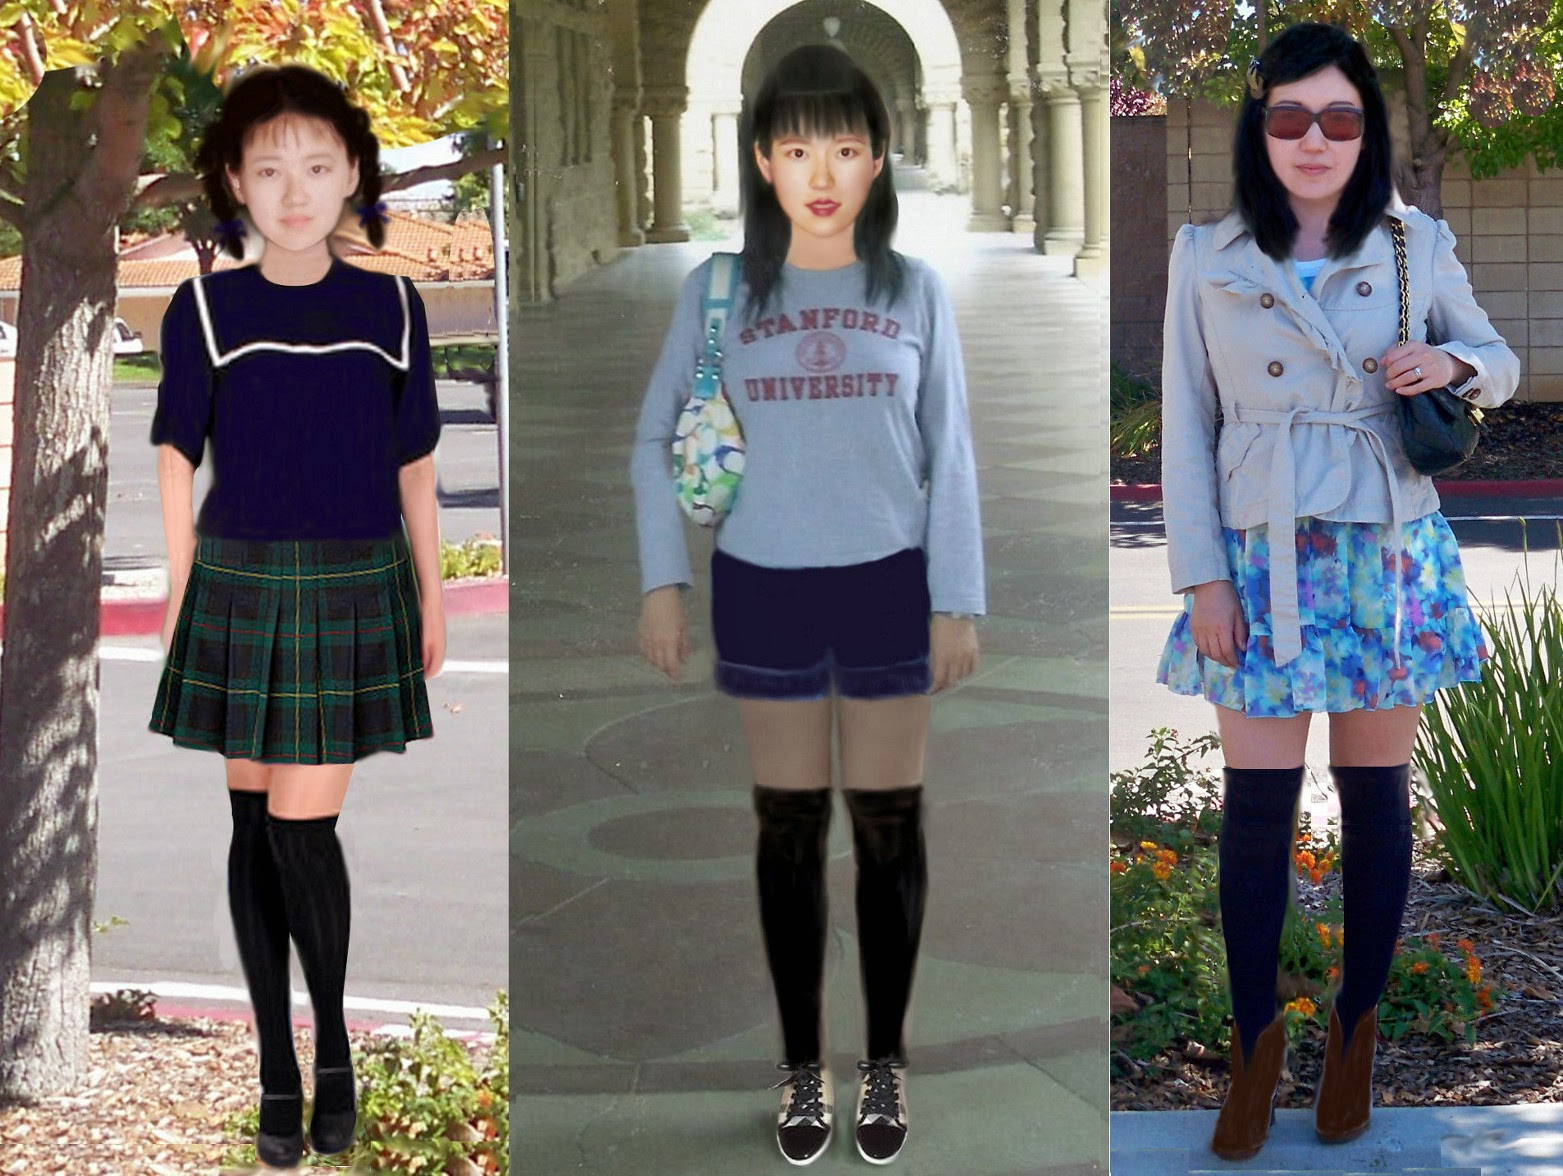 9246a6dc9 According to Seventeen magazine, Clueless-inspired outfits are among the  hottest back-to-school trends this fall.